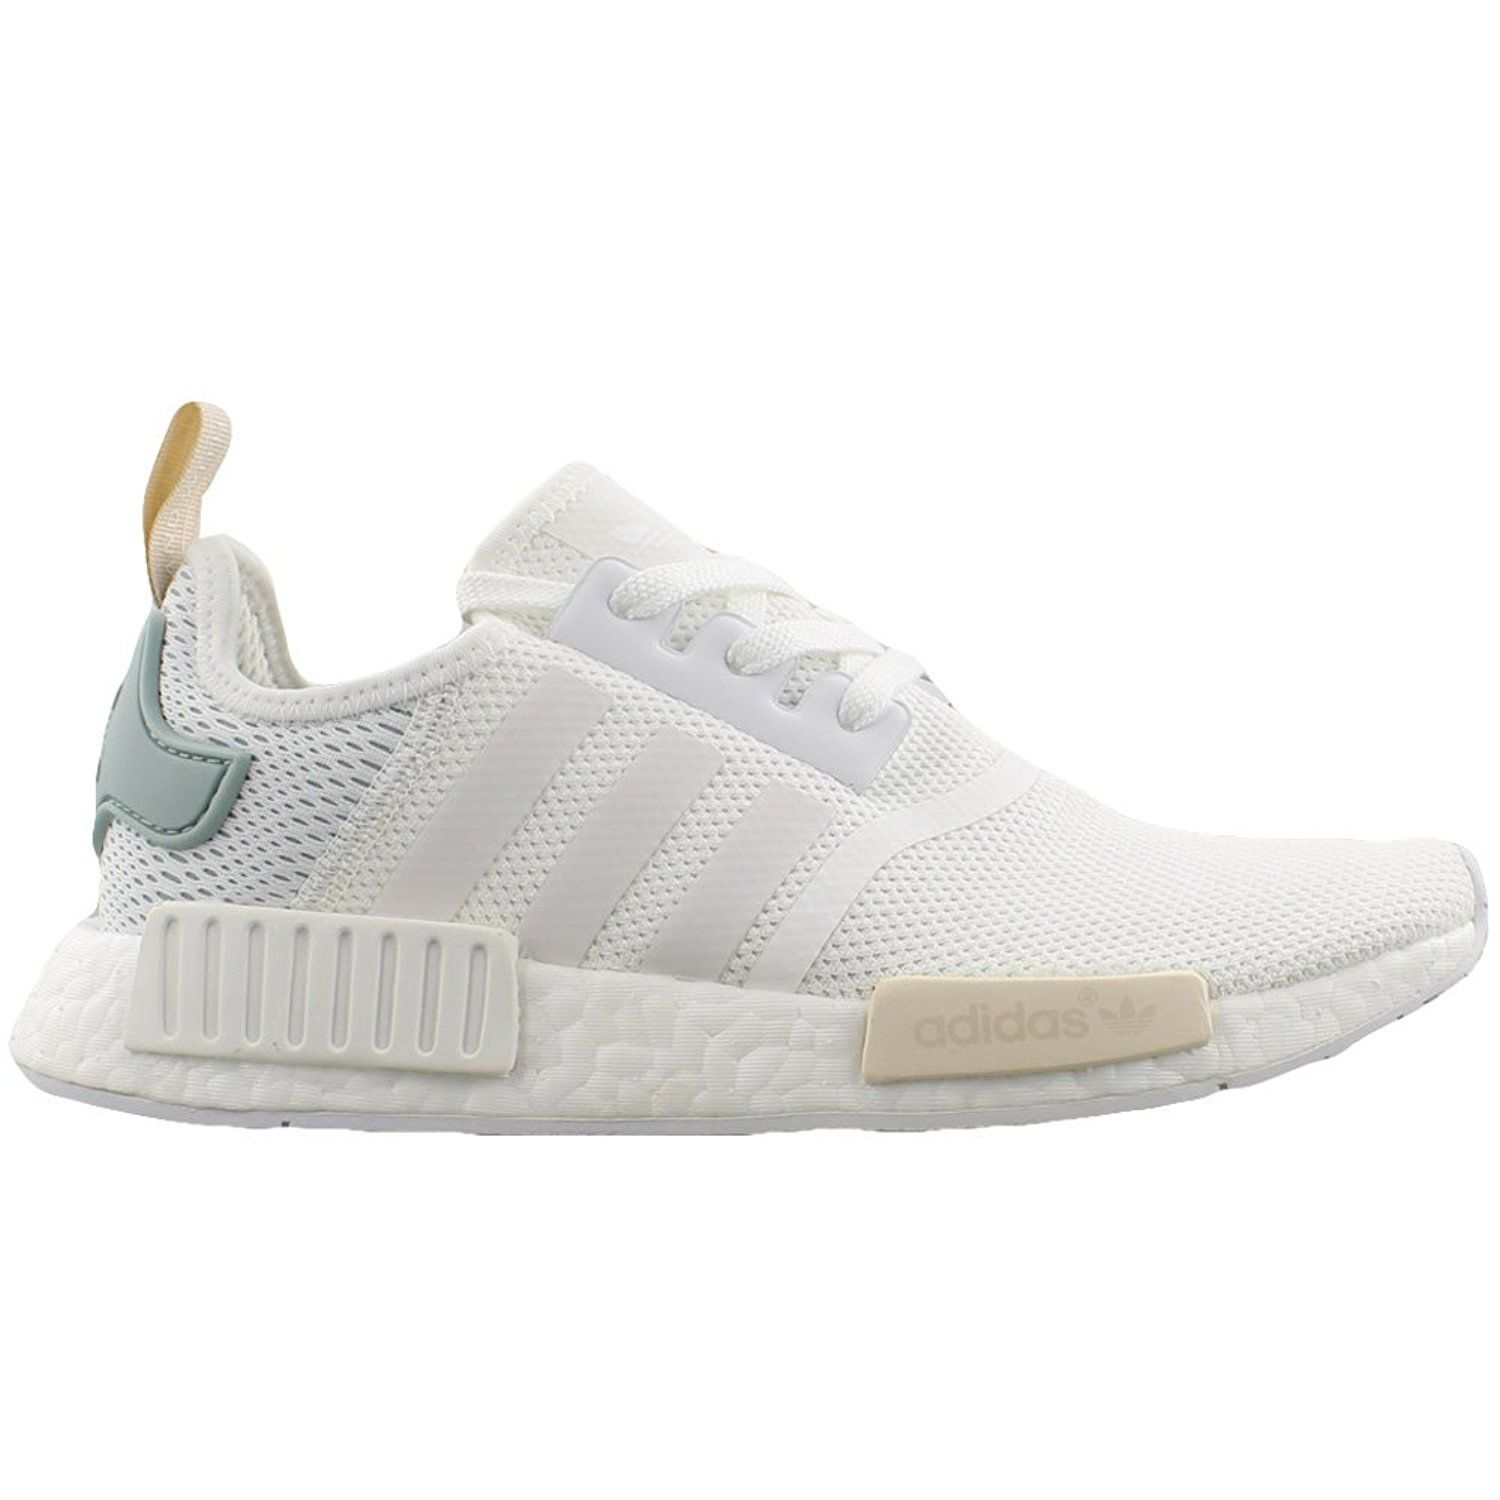 8ad3538029b56 Amazon.com | Adidas Womens NMD White | Fashion Sneakers | Birthday ...